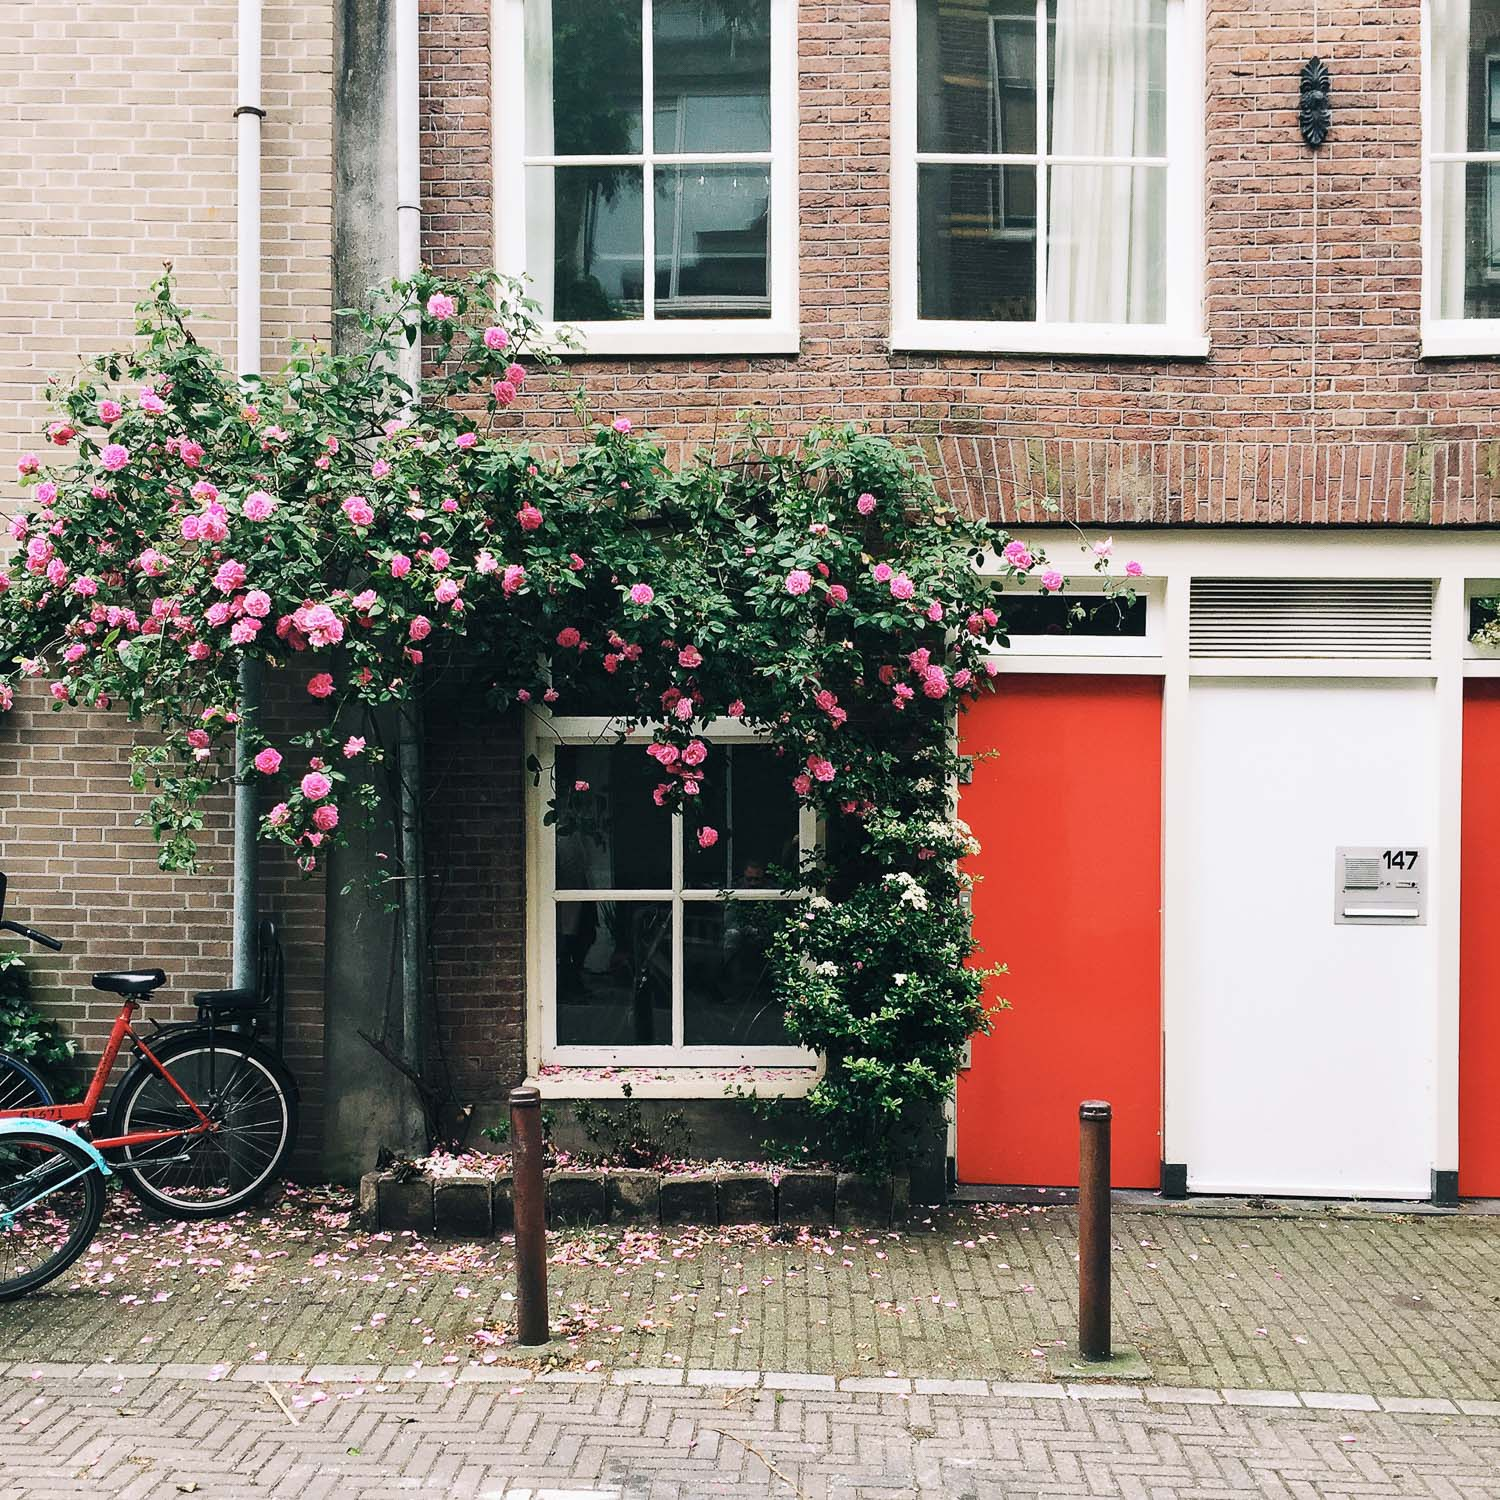 Meet-The-Blogger-Amsterdam-On-a-hazy-morning-workshop-mobile-photography-5.jpg